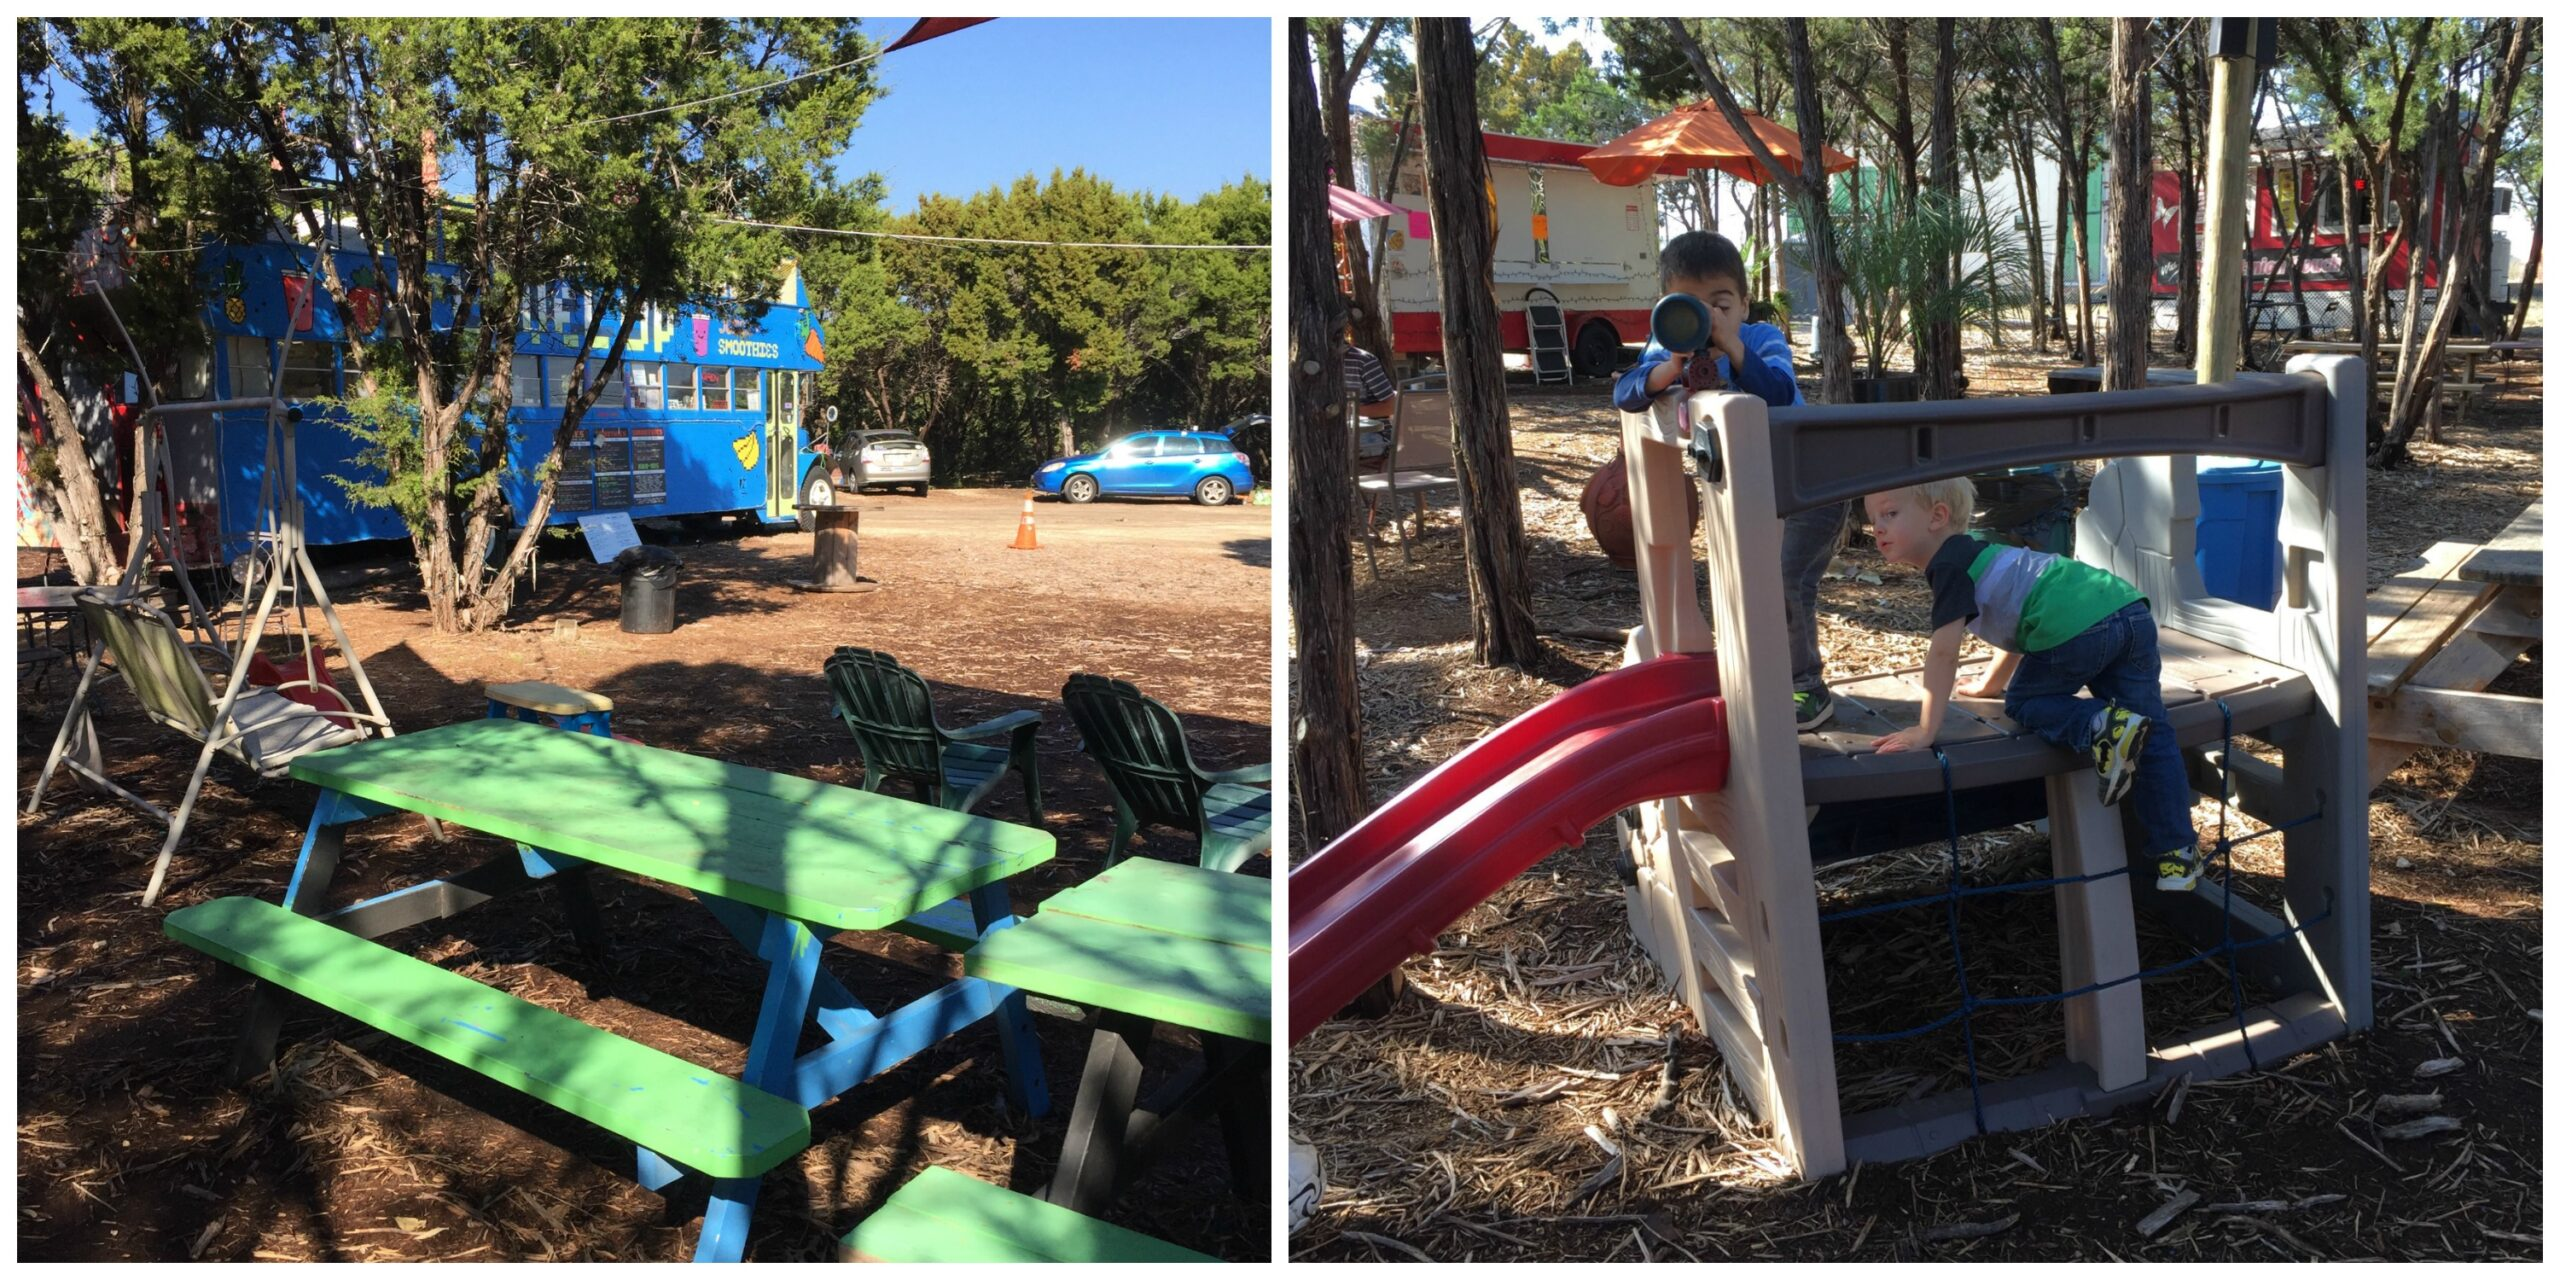 View of Level Up bus; kids on playscape at The Thicket | Free Fun in Austin